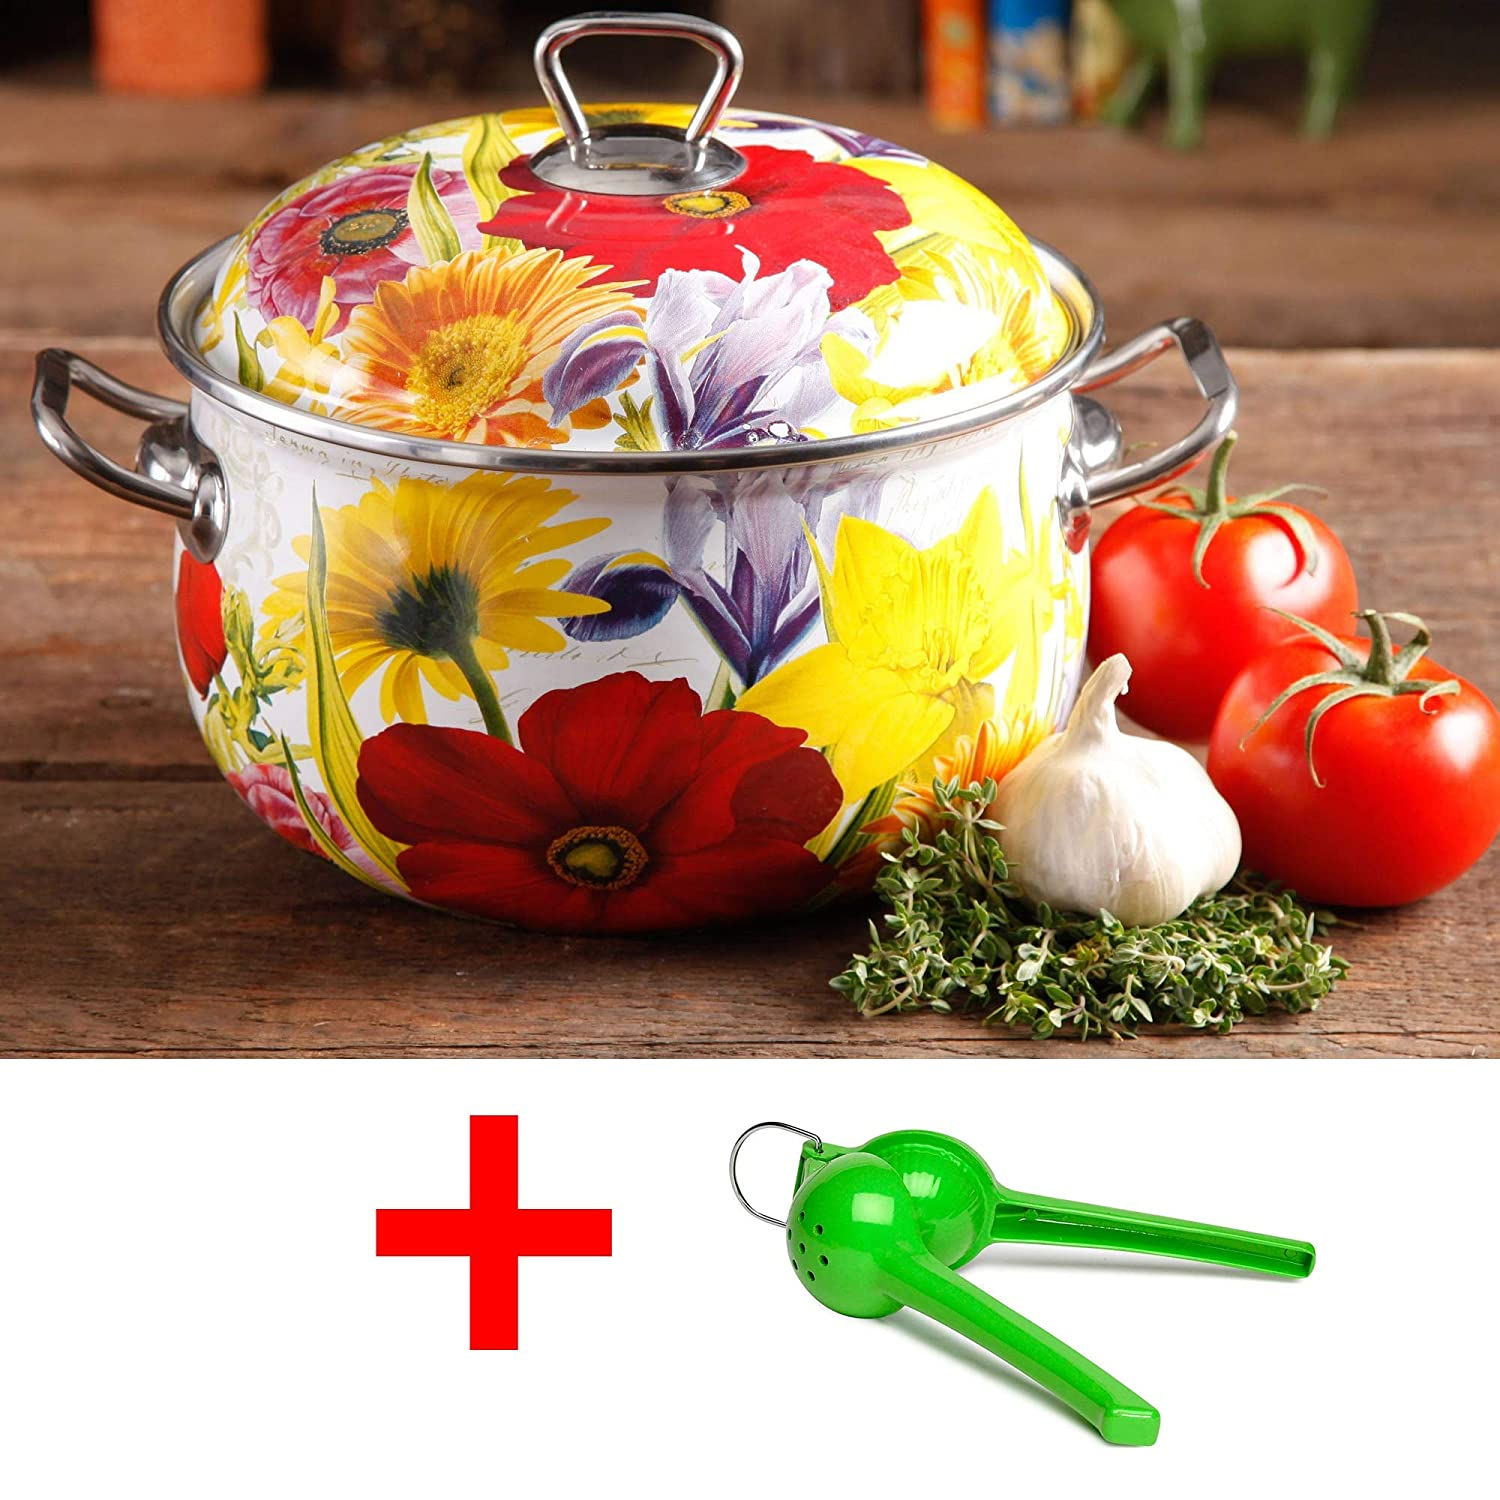 The Pioneer Woman Floral Garden 4-Quart Dutch Oven With Lime (4qt)